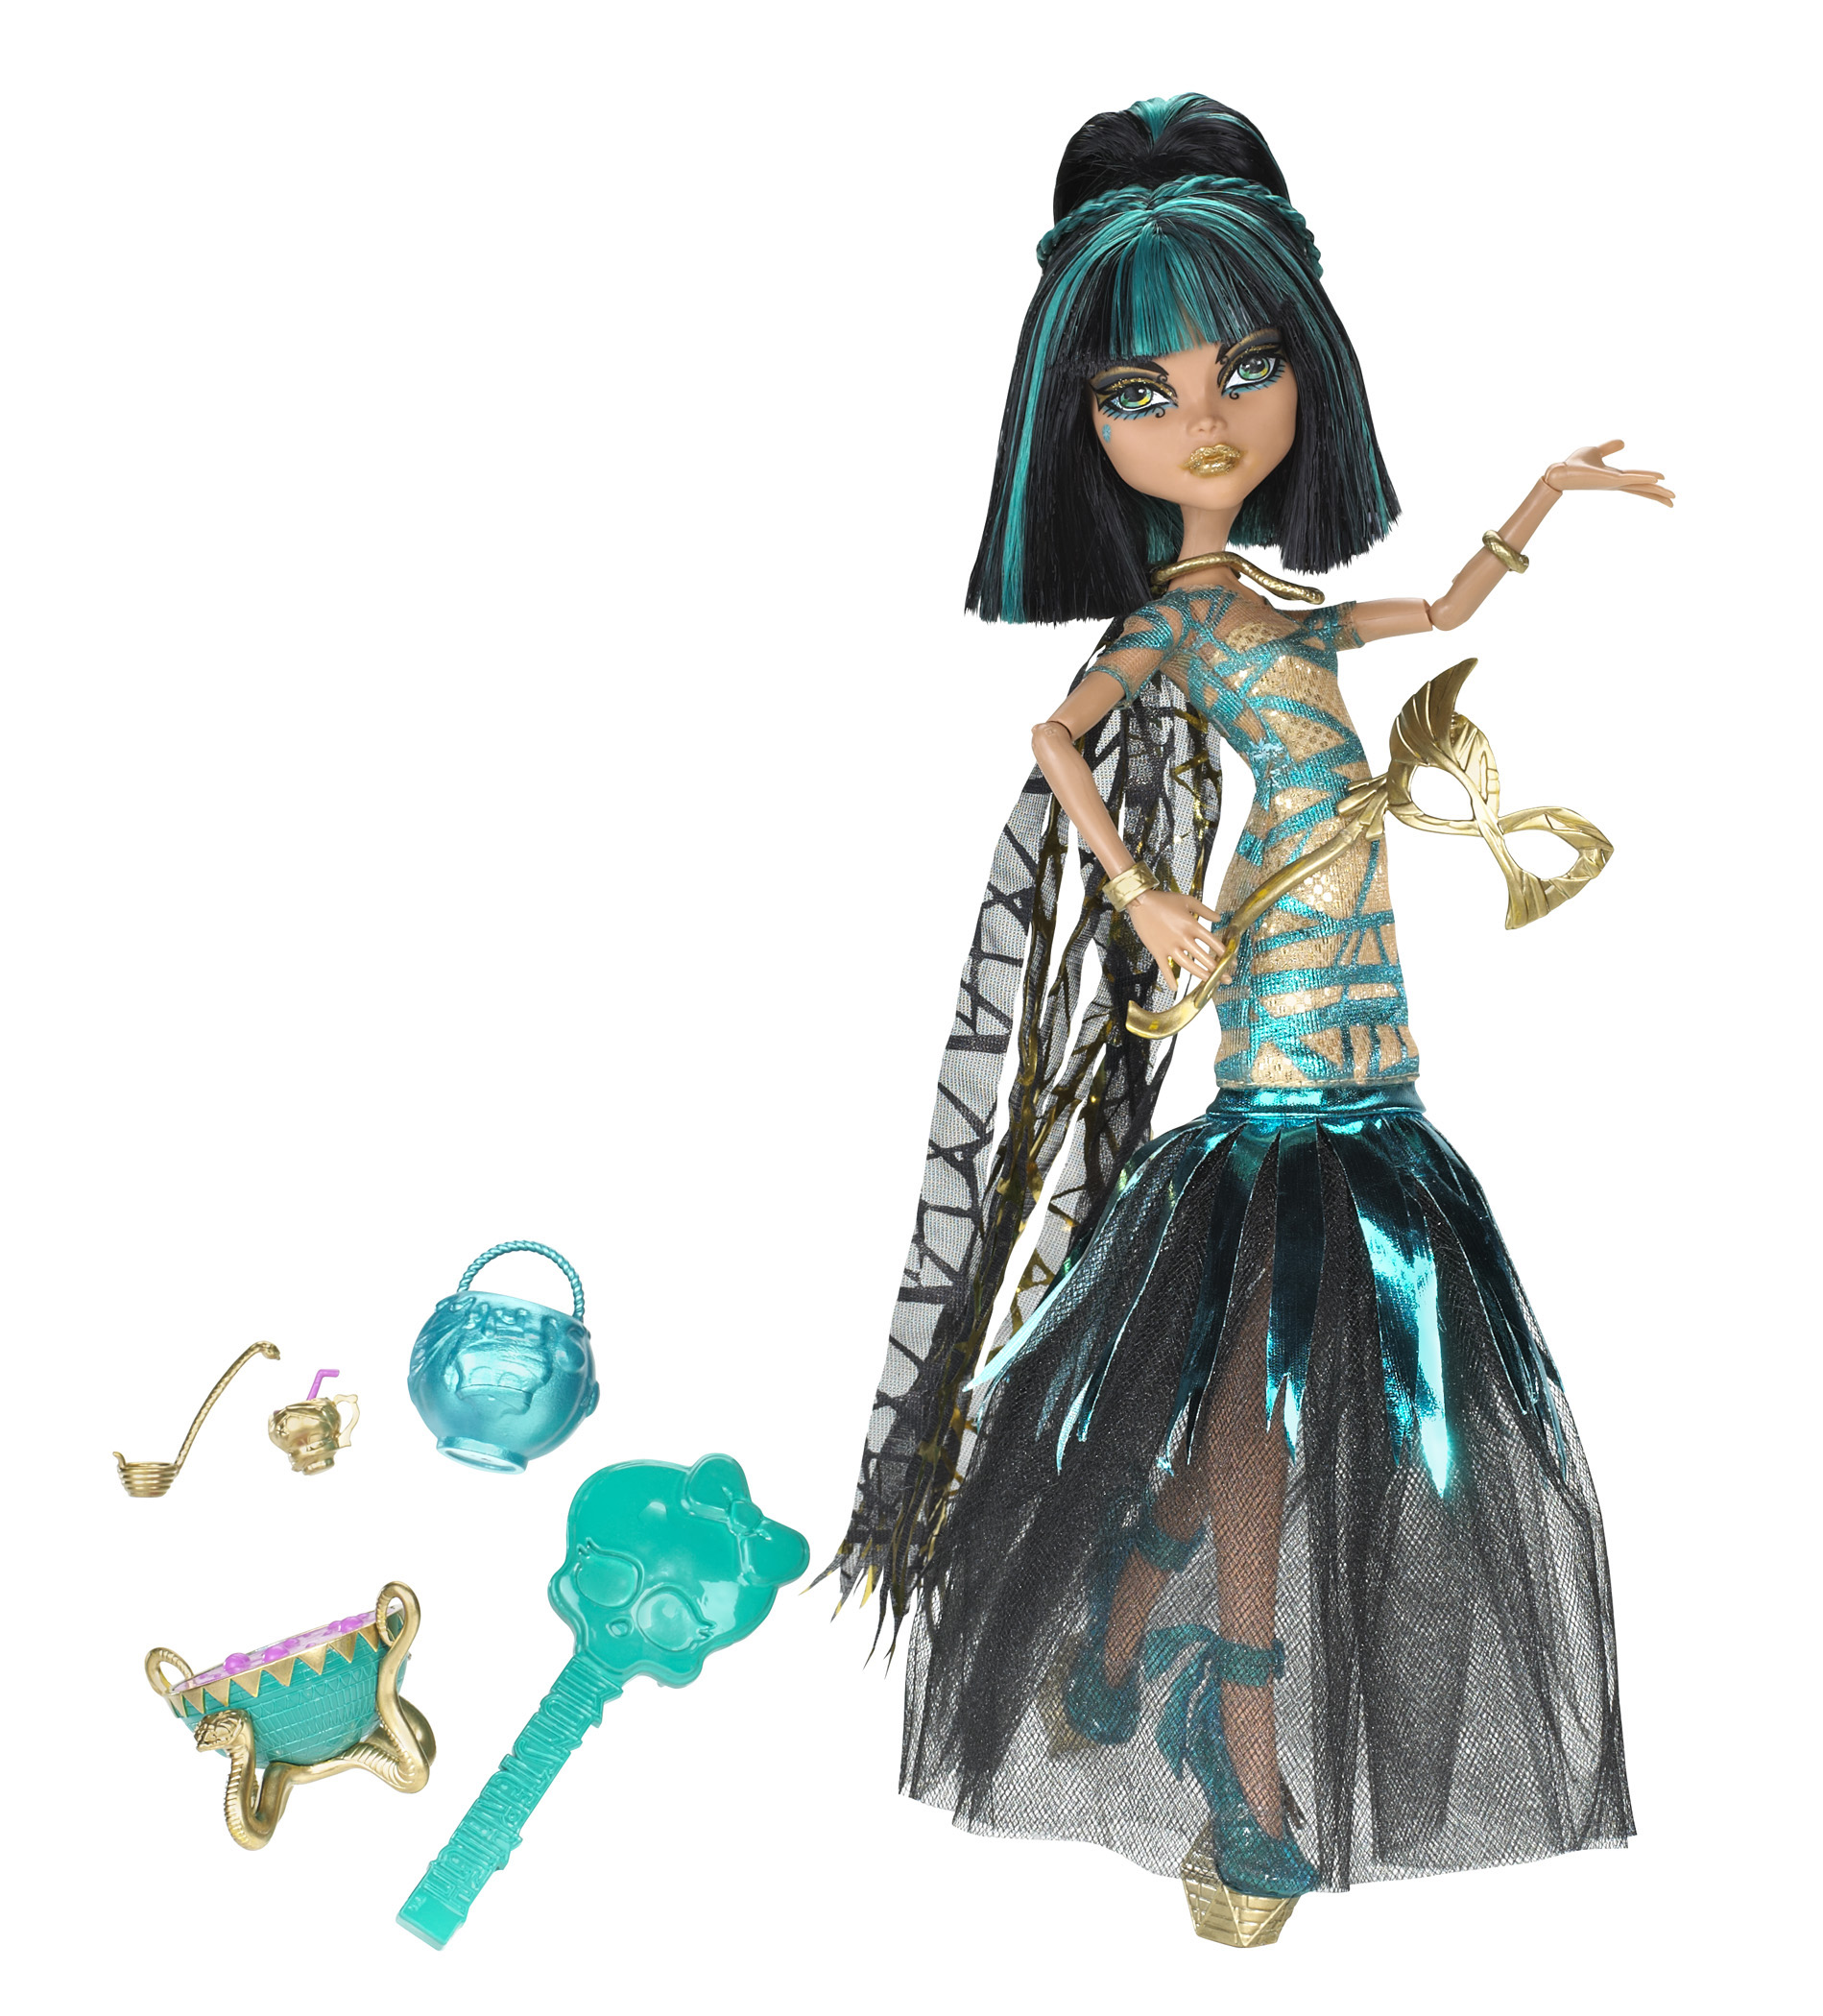 Monster high is awesome images monster high ghouls rule - Monster high image ...